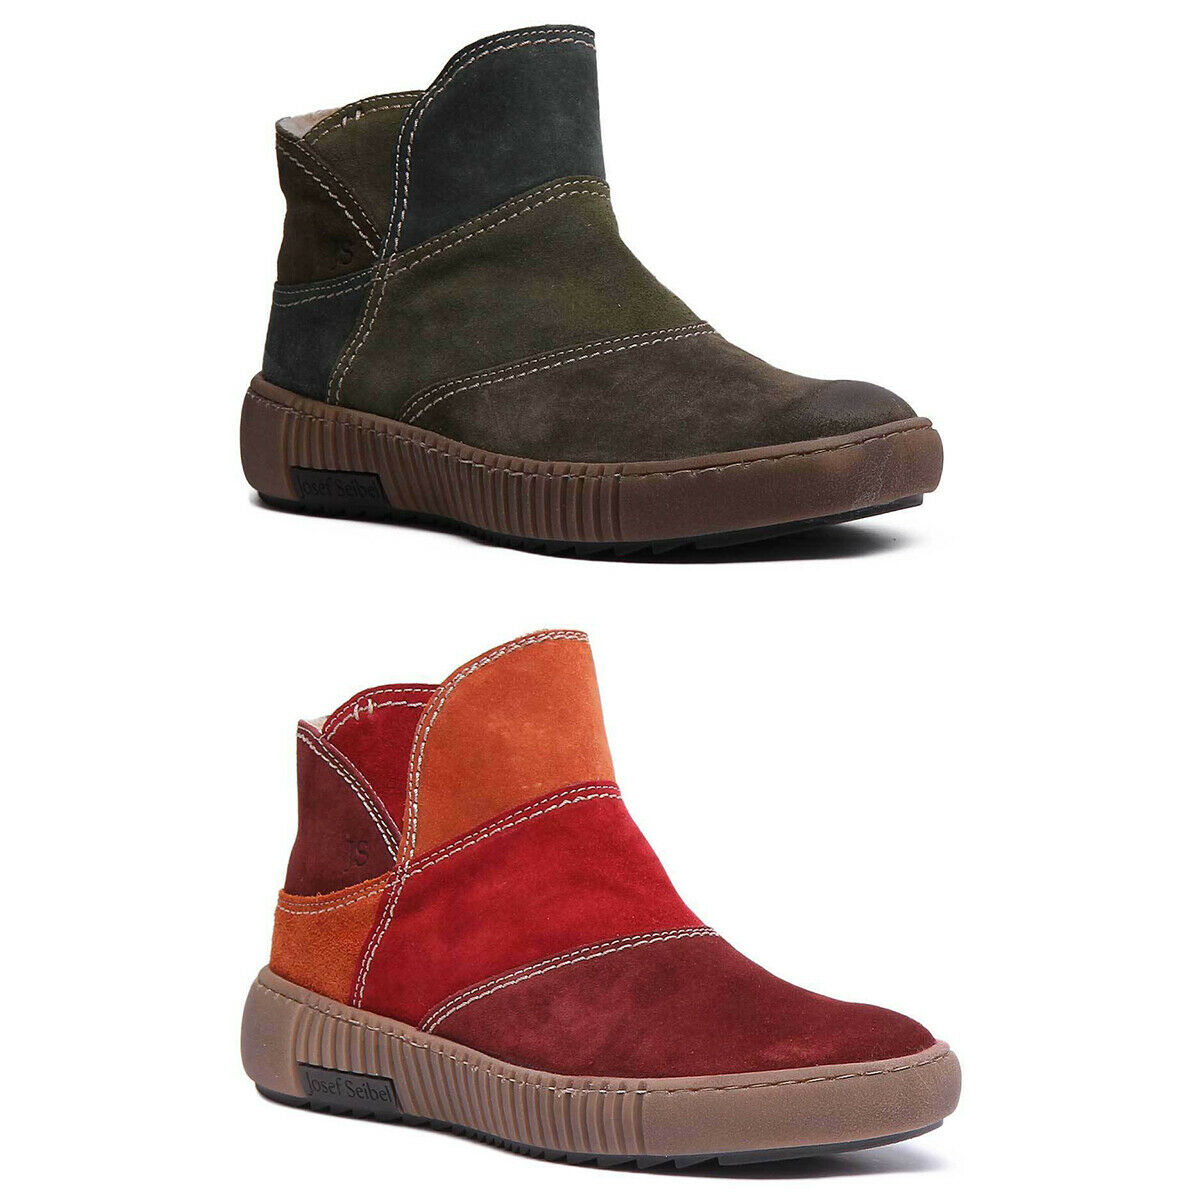 Josef Seibel Maren 04 Womens Suede Casual Ankle boots In Red Size UK 3-8